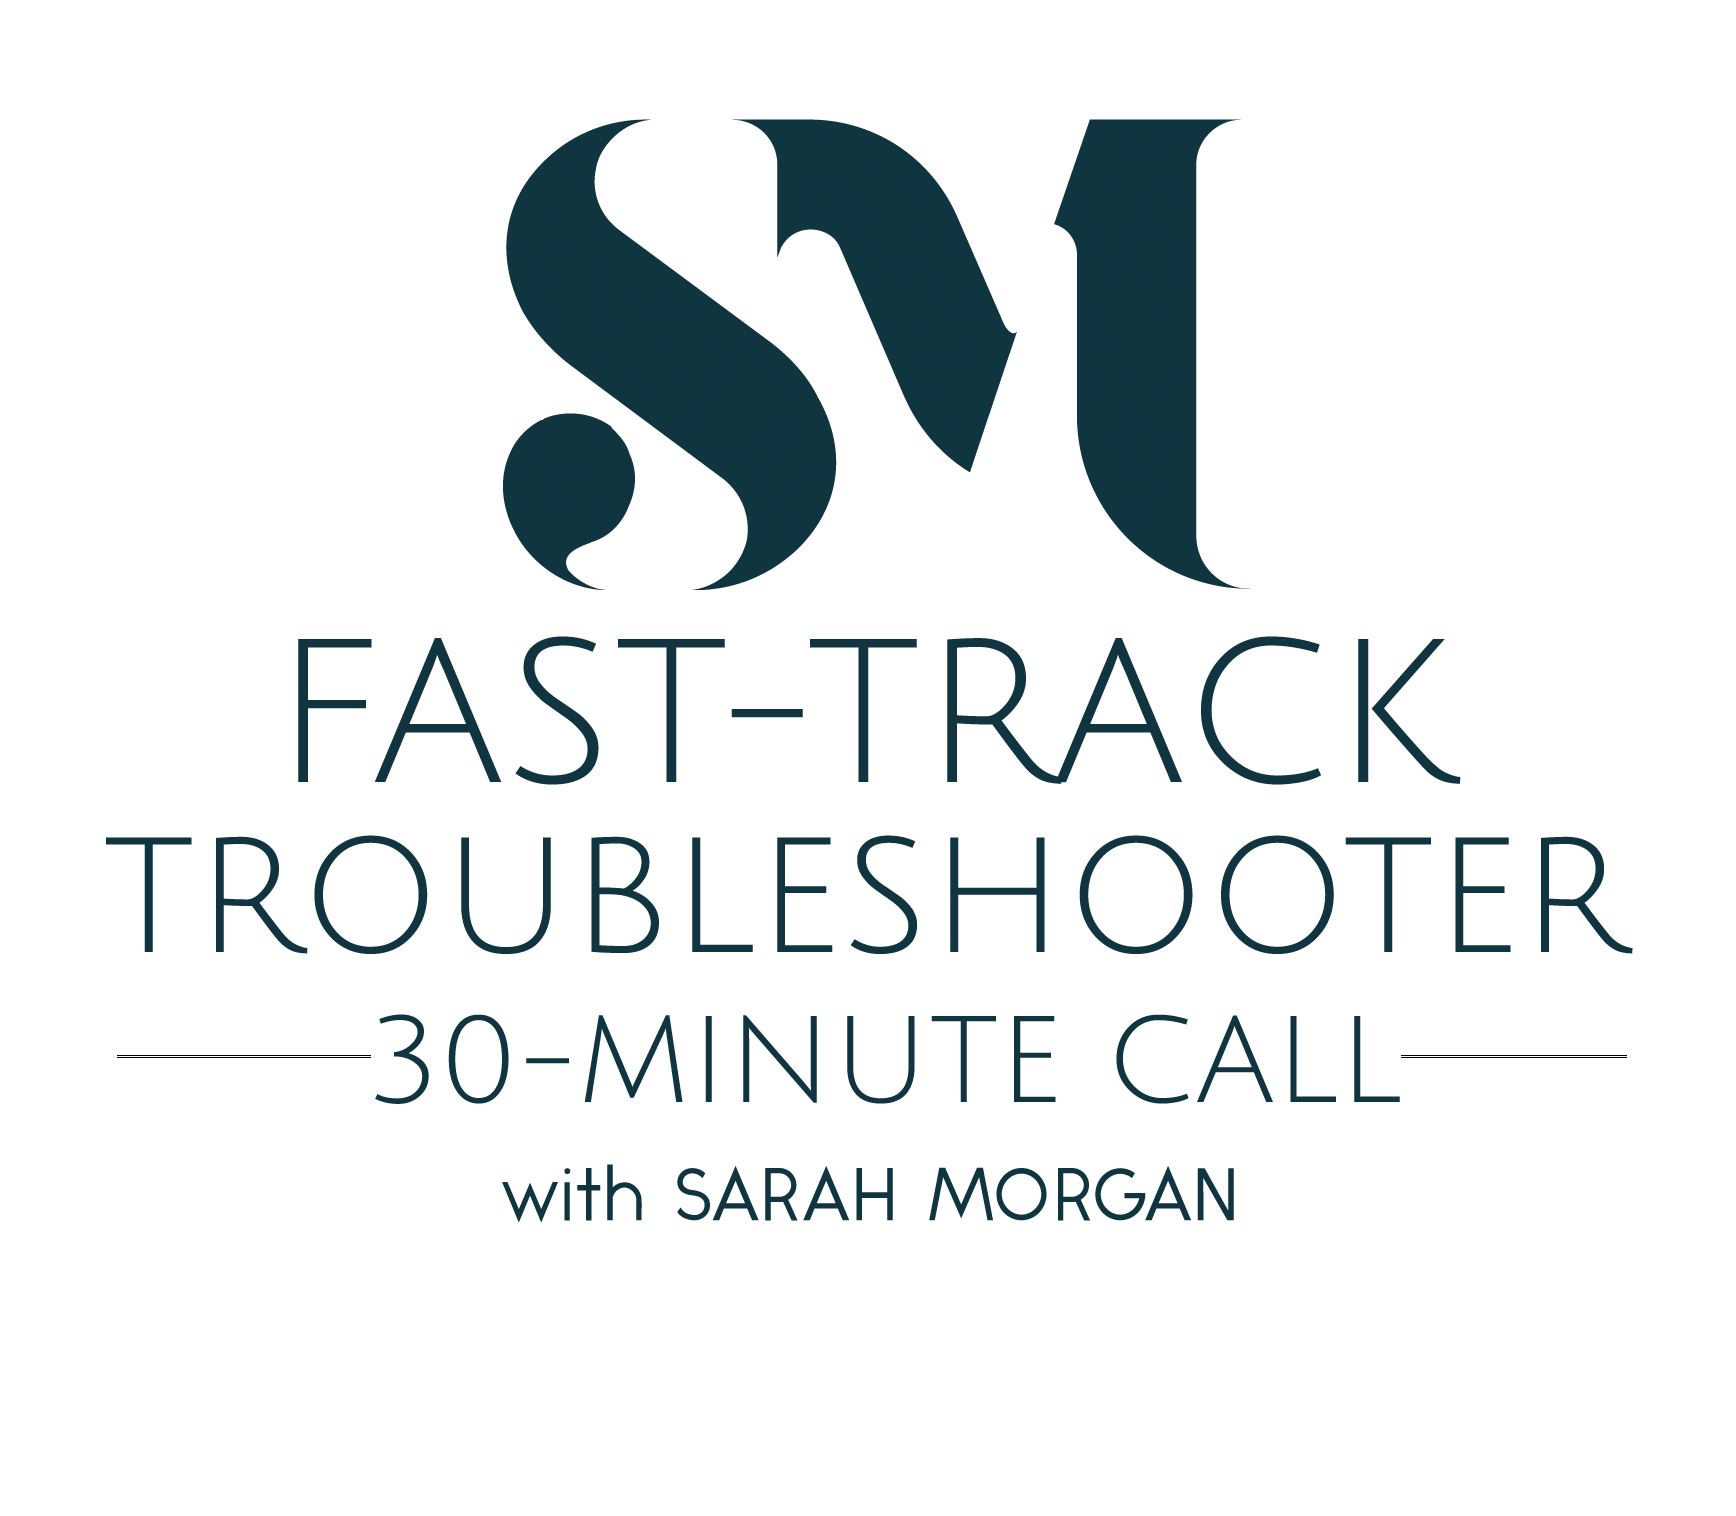 Fast-track Troubleshooter Call With Sarah Morgan